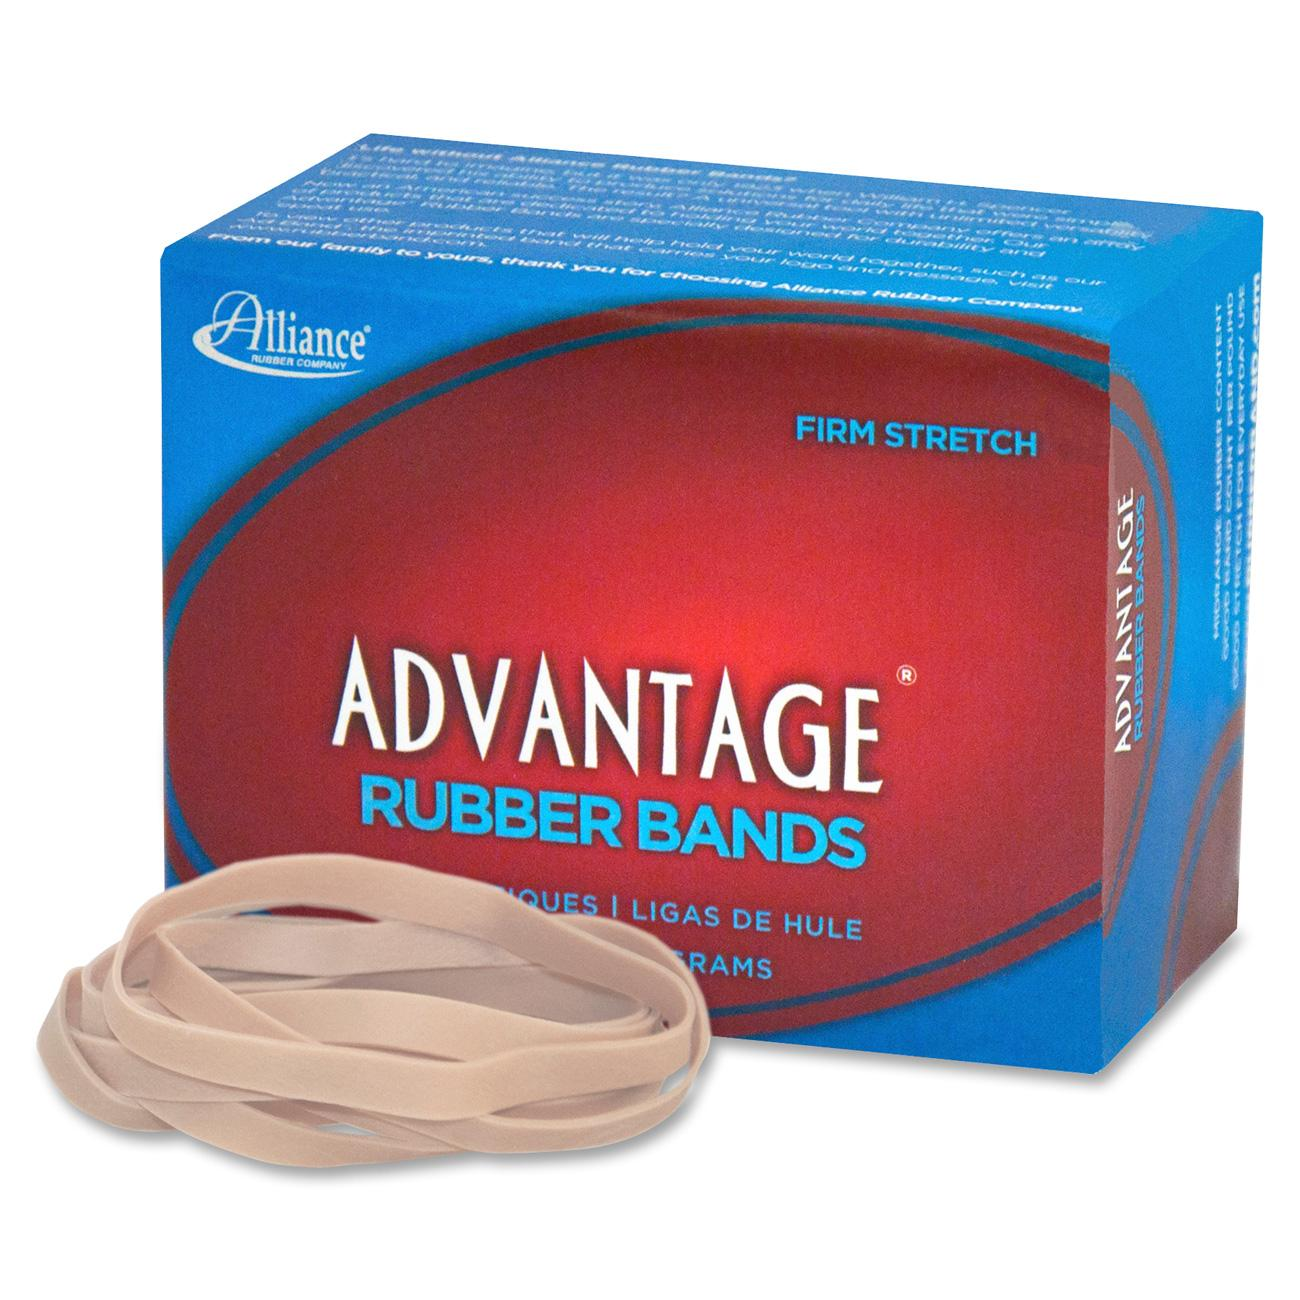 "Alliance, Advantage Rubber Bands, #64, 3 1/2"" x 1/4"", 1/4 lb. box"